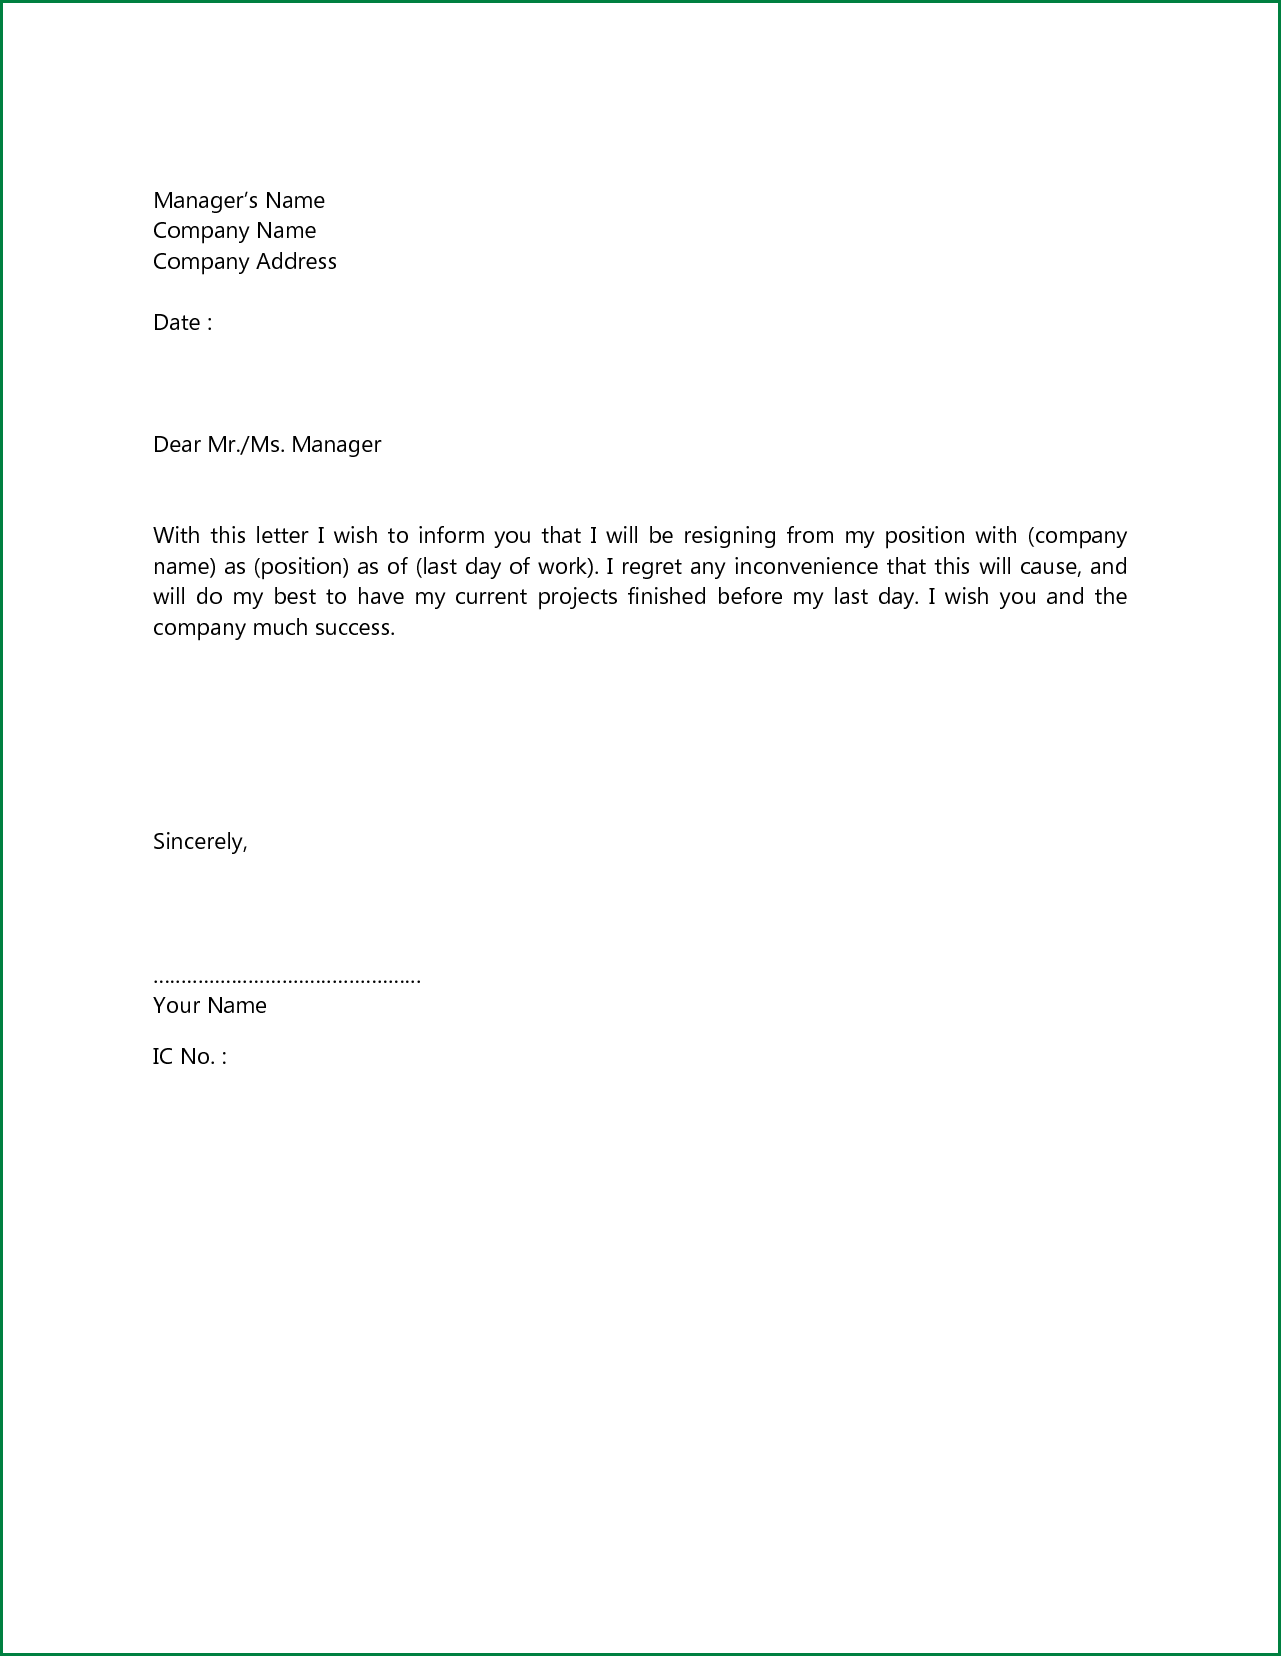 quick cover letter template  simple short cover letter - Forza.mbiconsultingltd.com